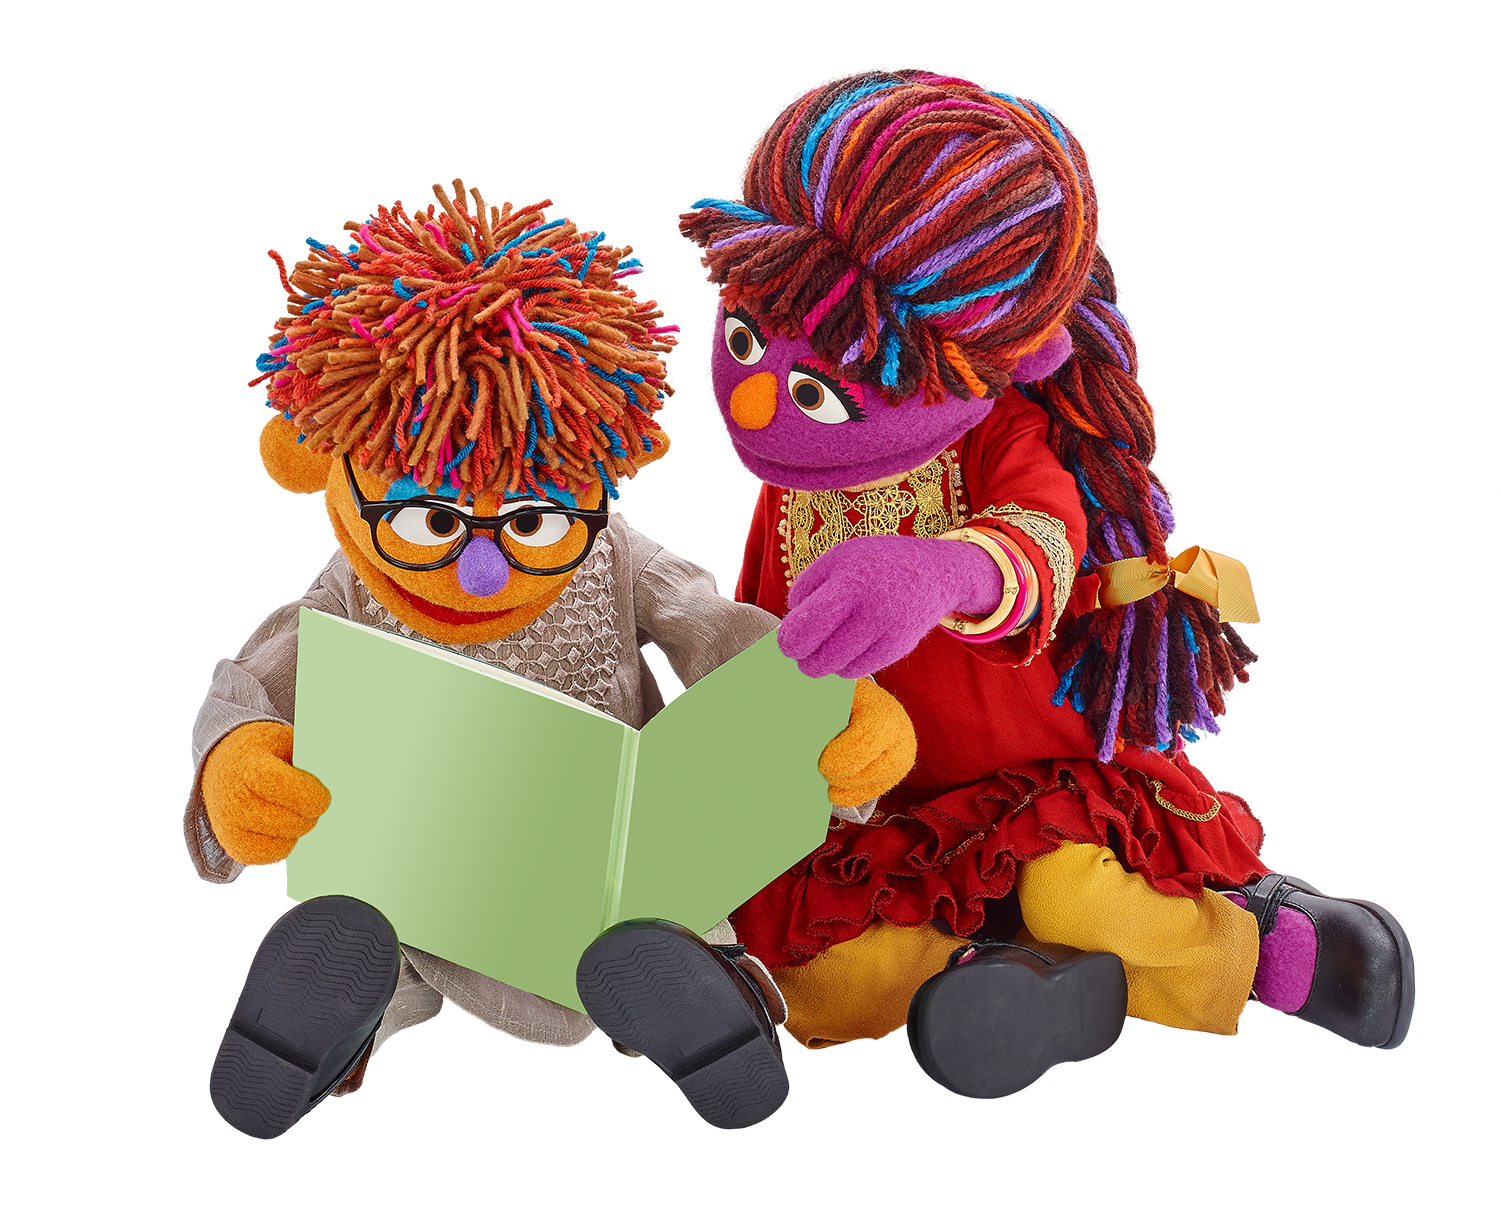 Zeerak sits with his older sister Zari. They're reading together.